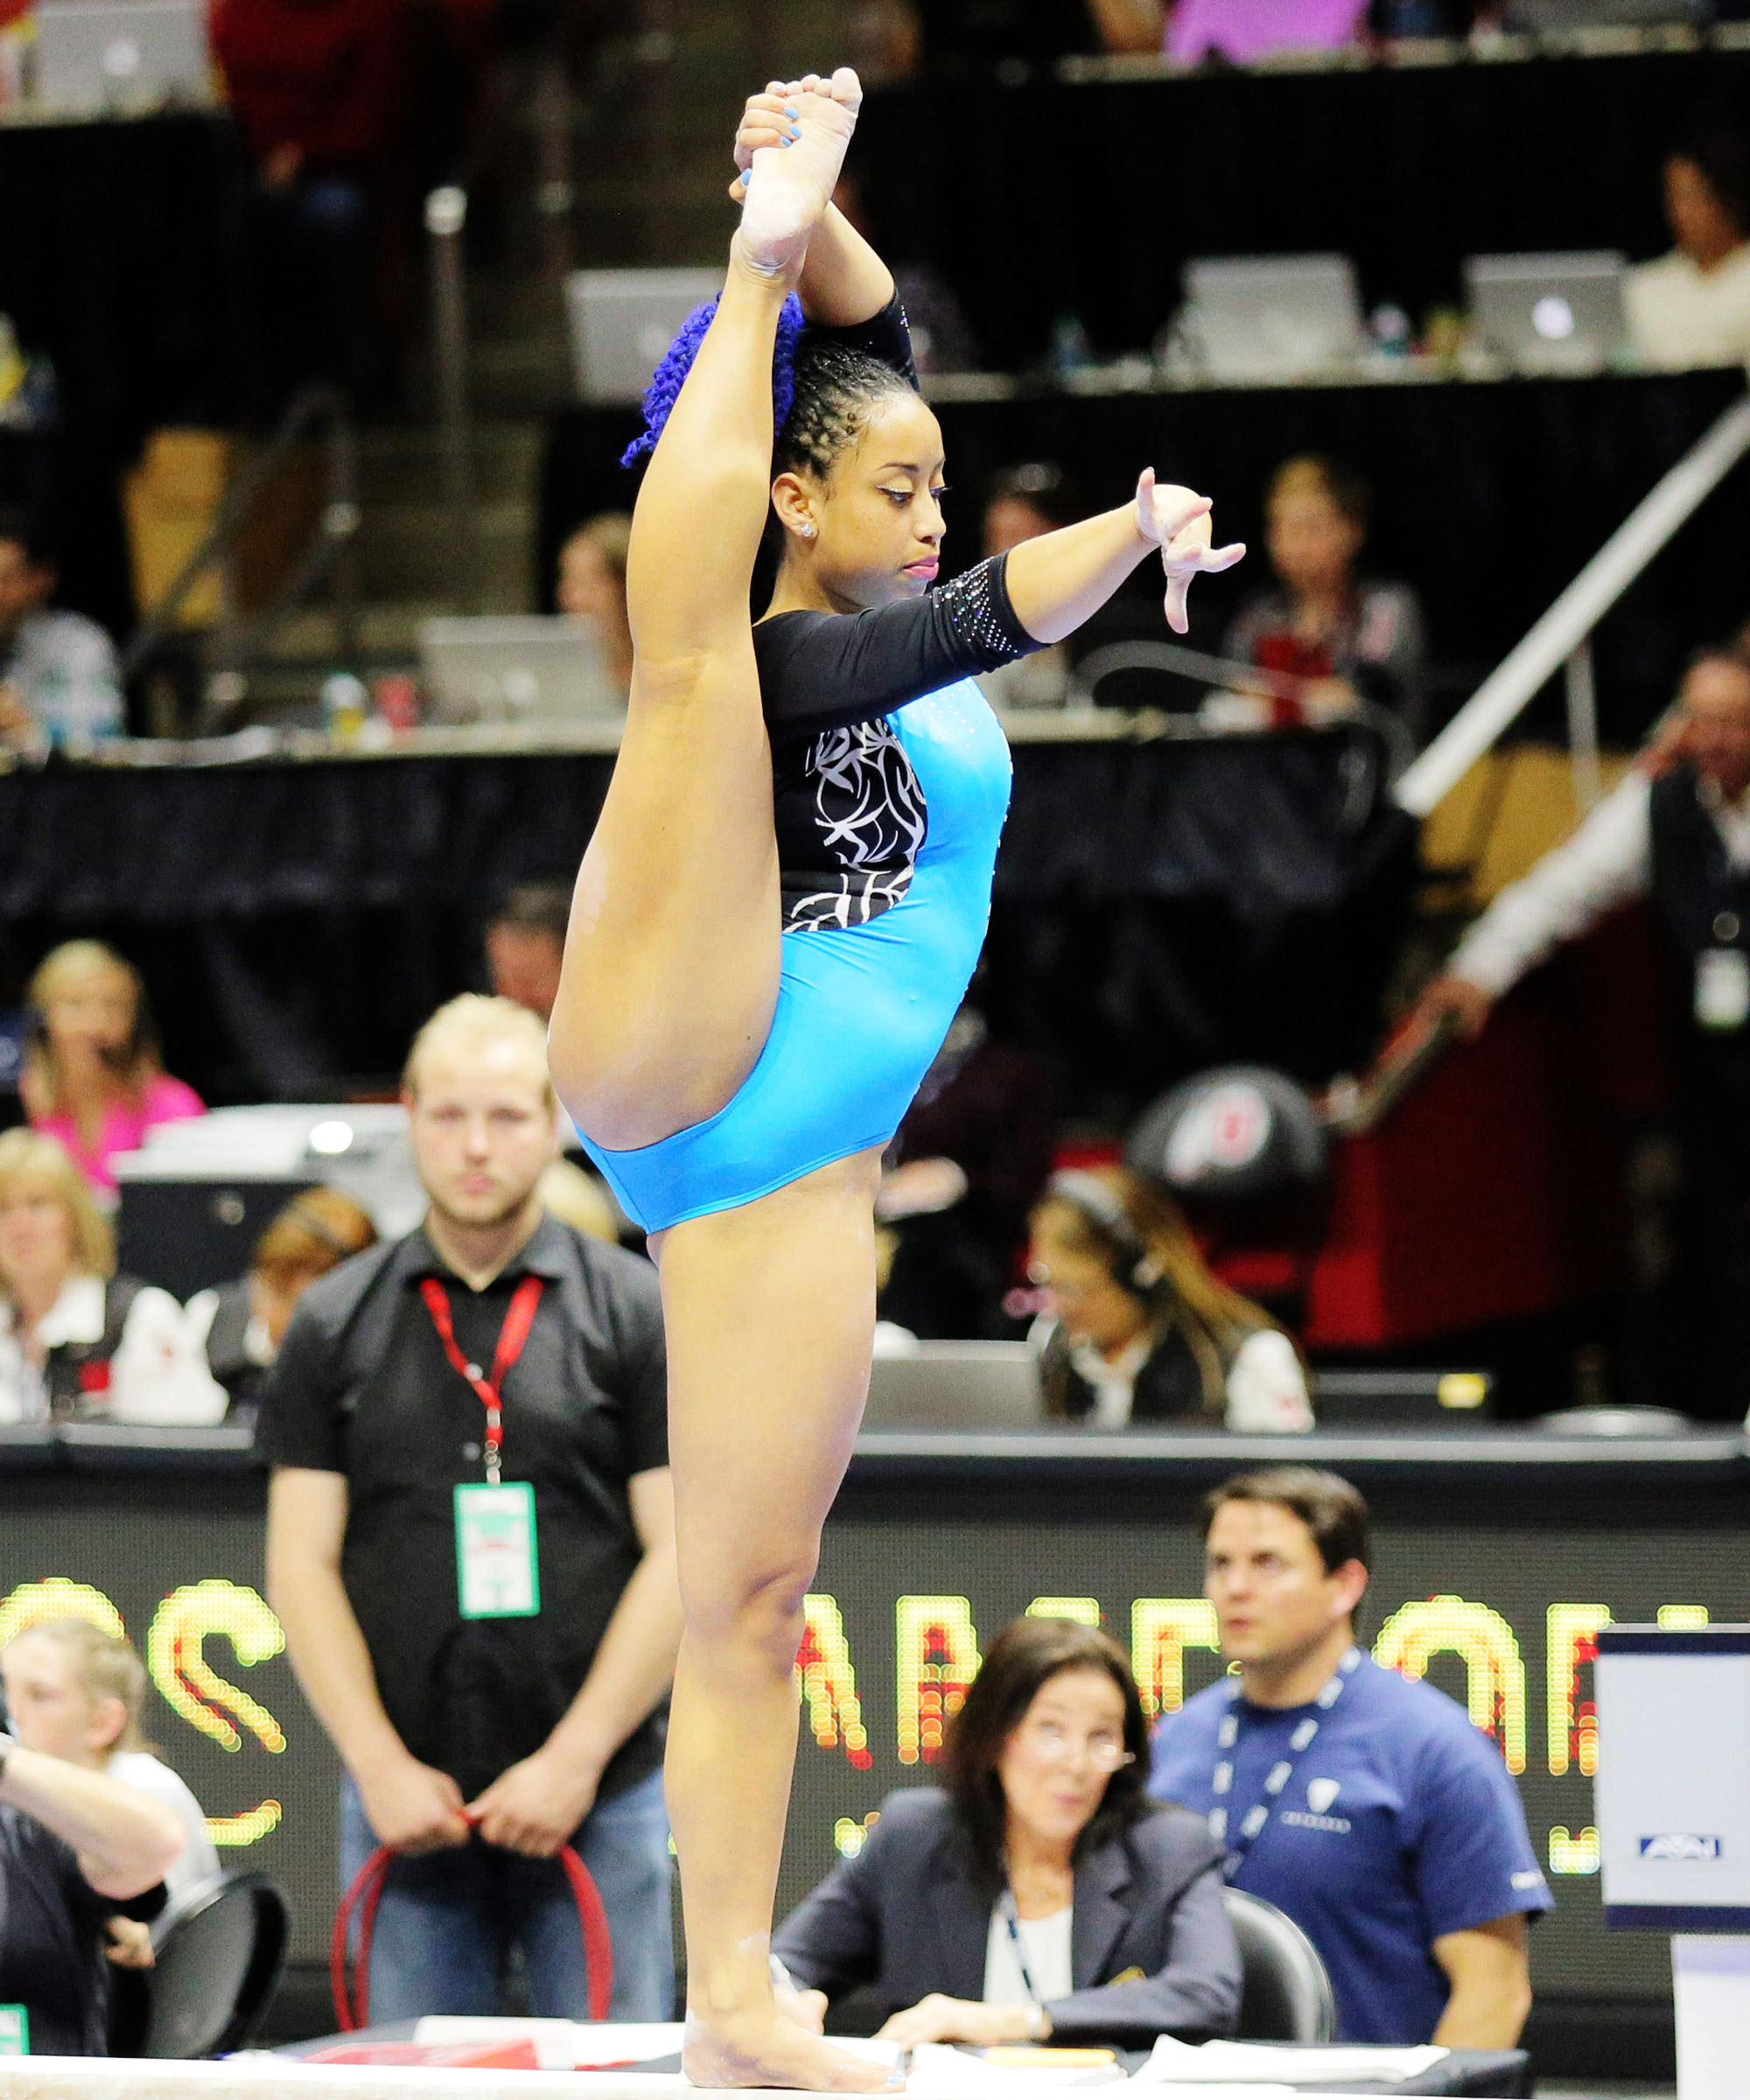 Sophina DeJesus UCLA Flawless Floor Routine | Sophina DeJesus Didnu0027t Just  Nail A Nearly